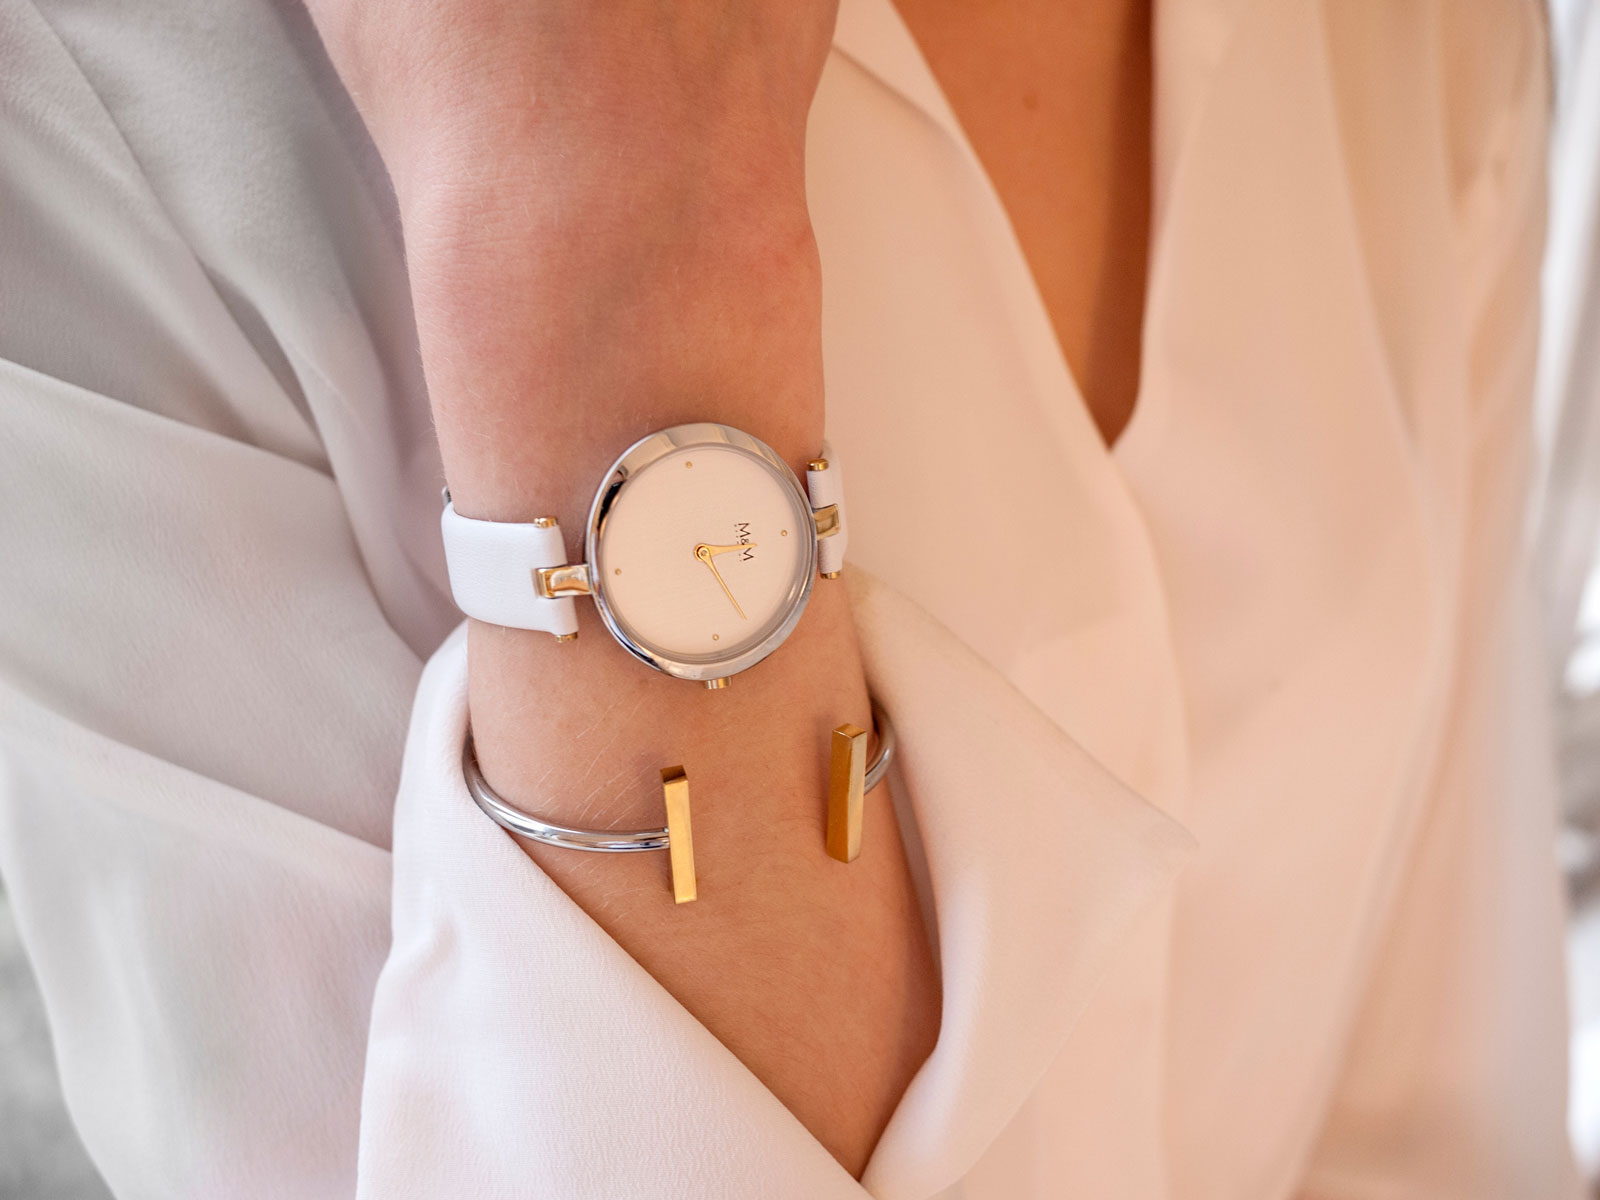 Women's Watch with Bracelet | Are Women's Watches Becoming More Fashionable & Popular?